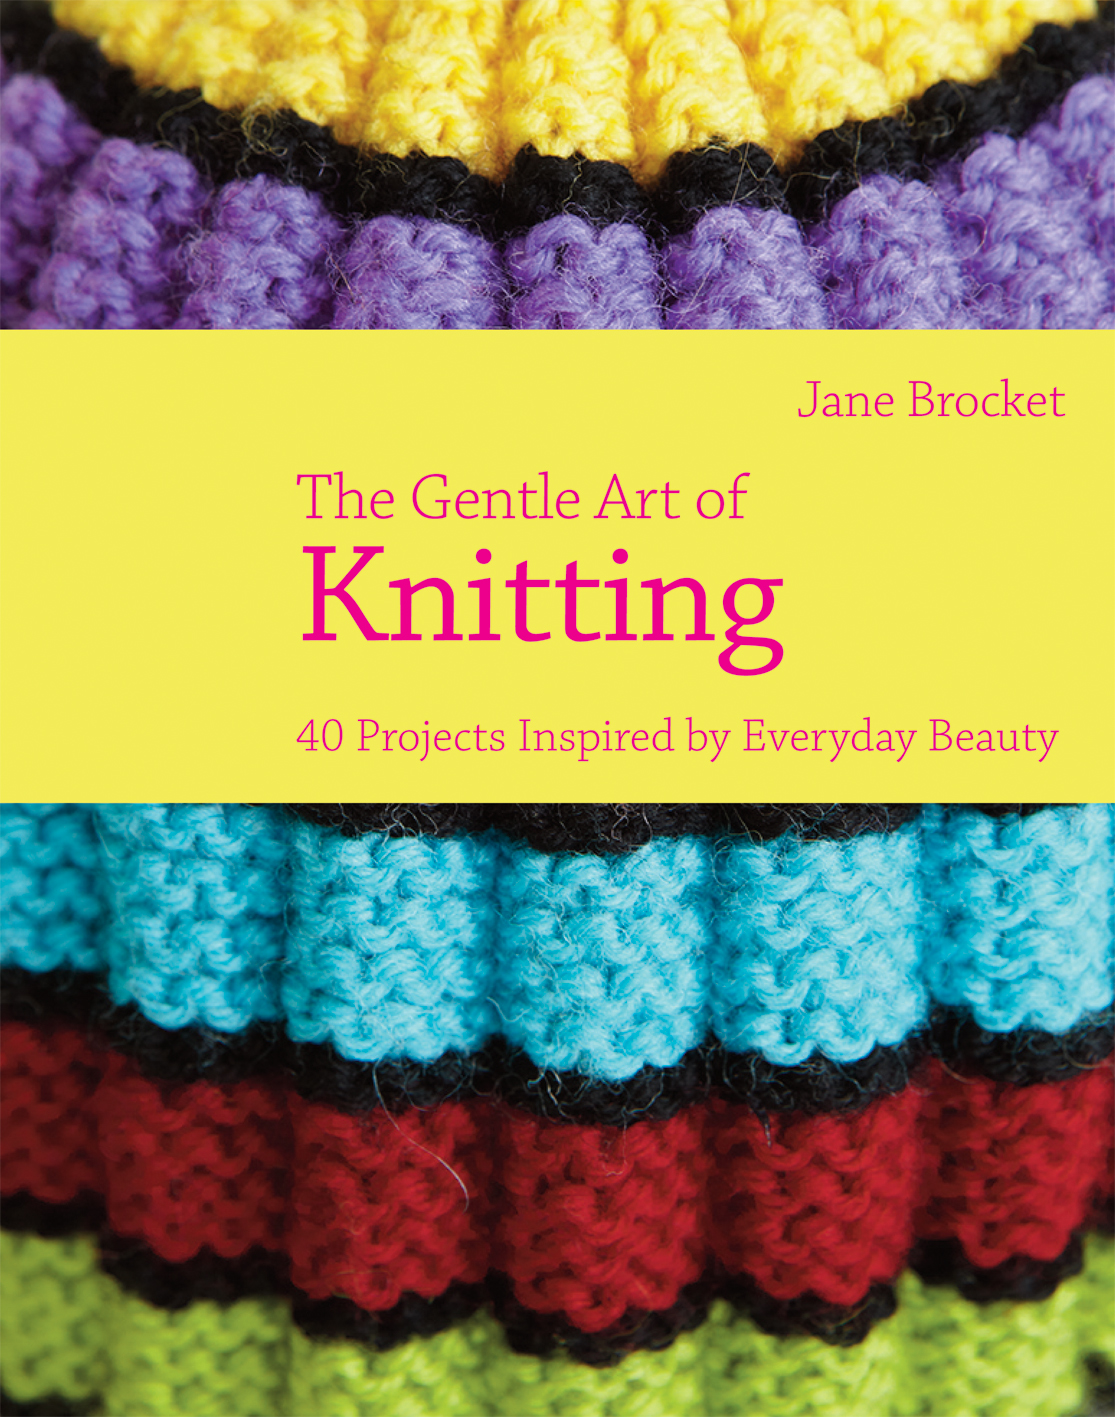 The Gentle Art of Knitting